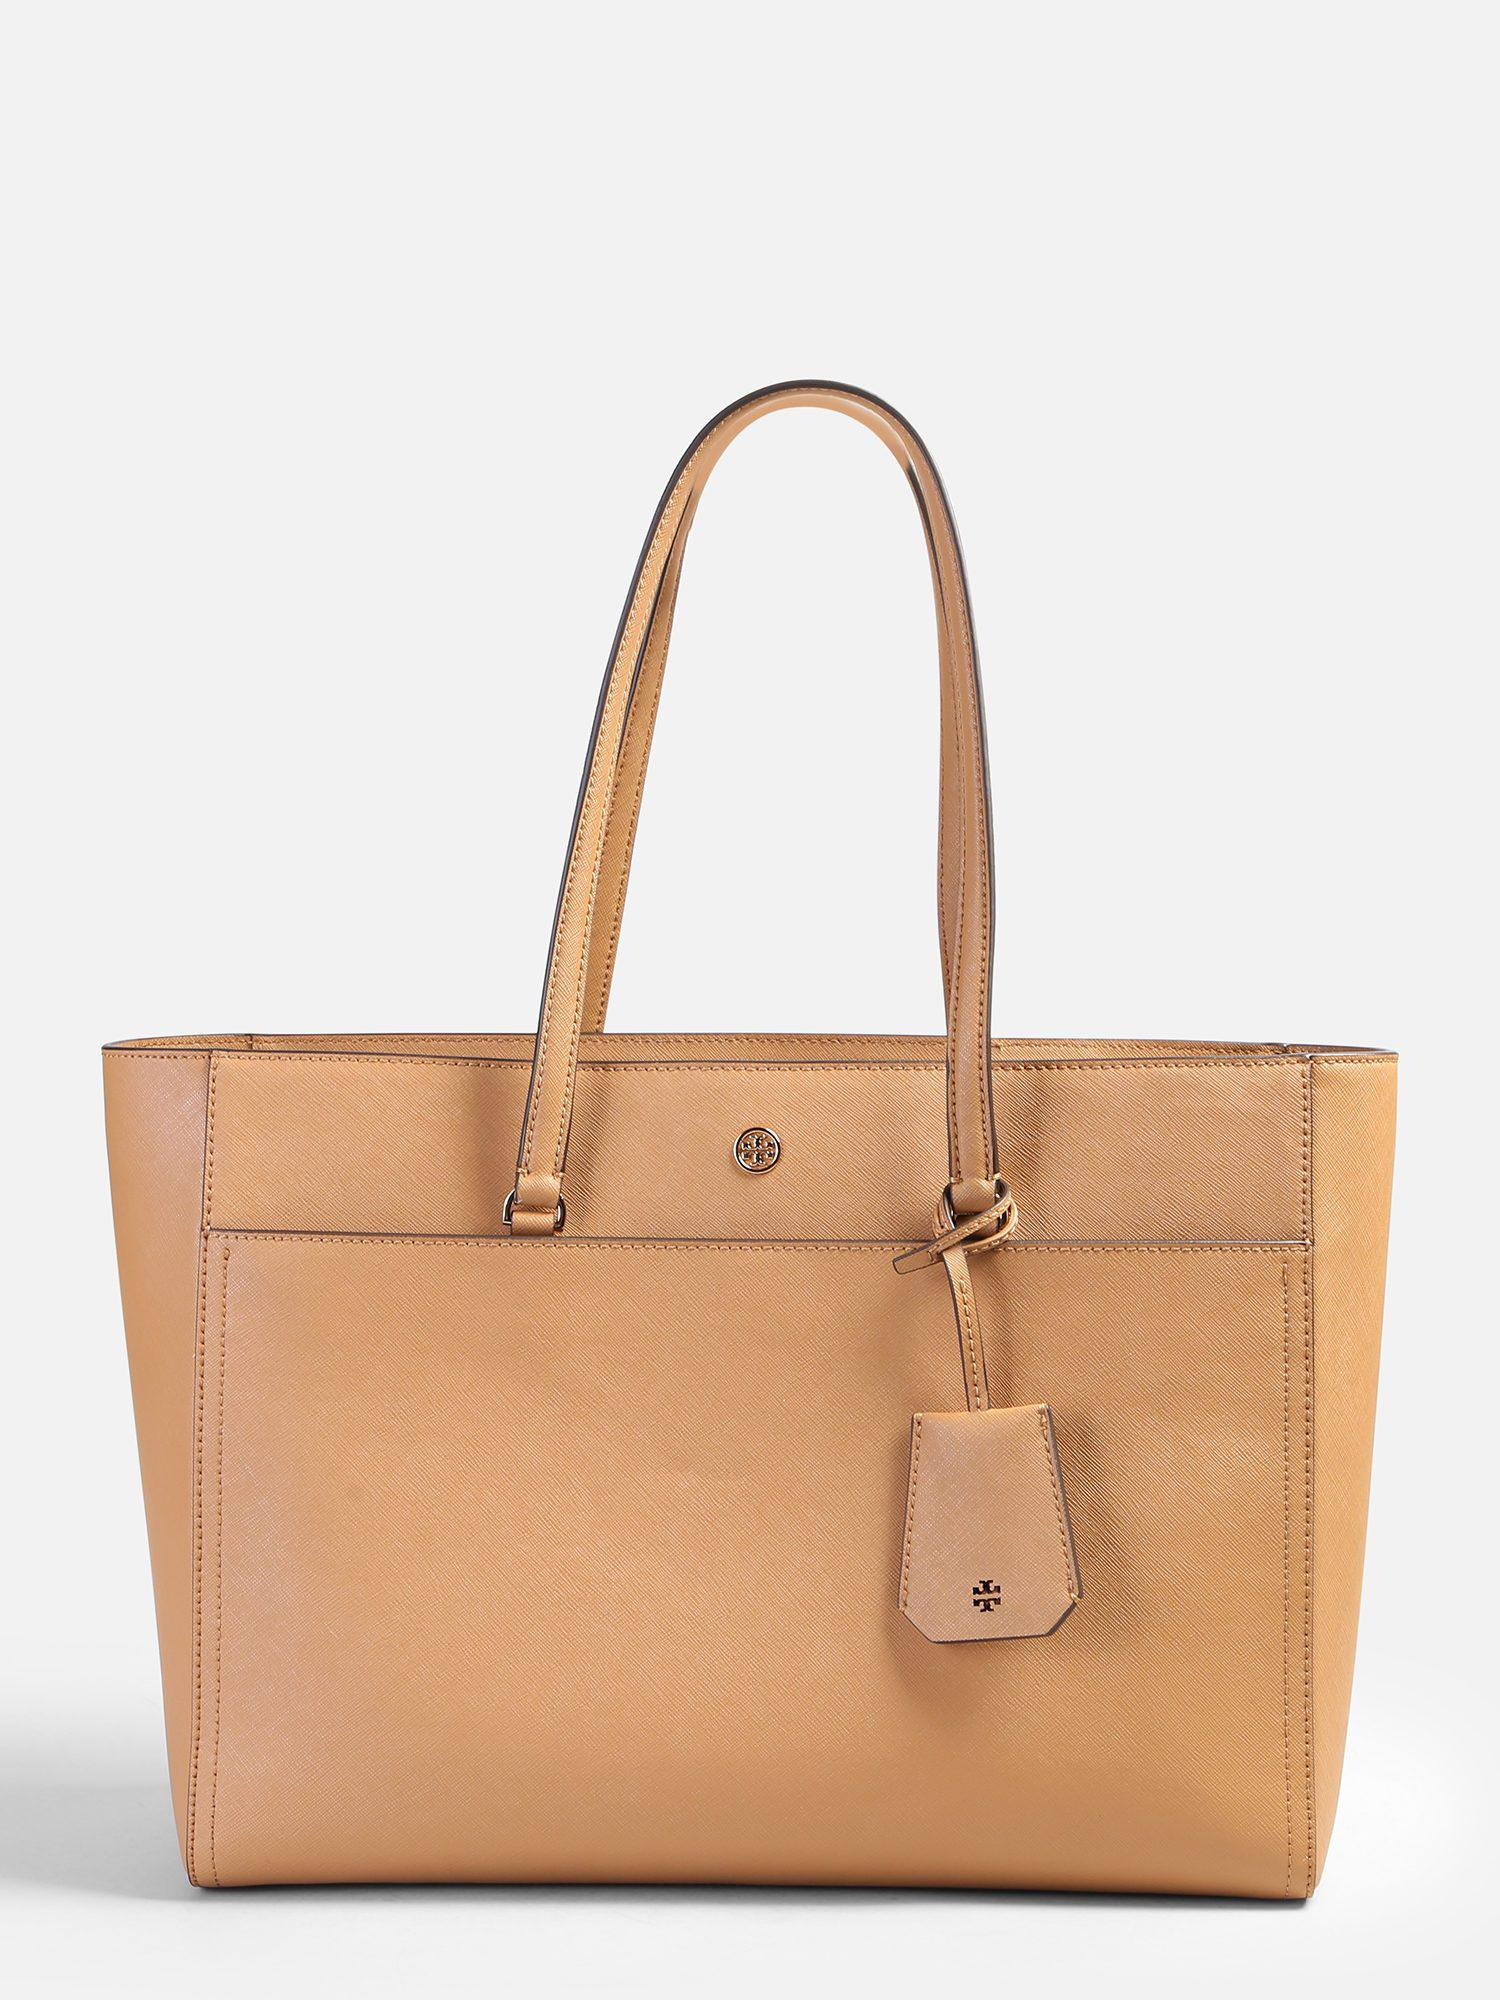 179aa0733dfb Tory Burch. Women s Large Robinson Saffiano Leather Bag